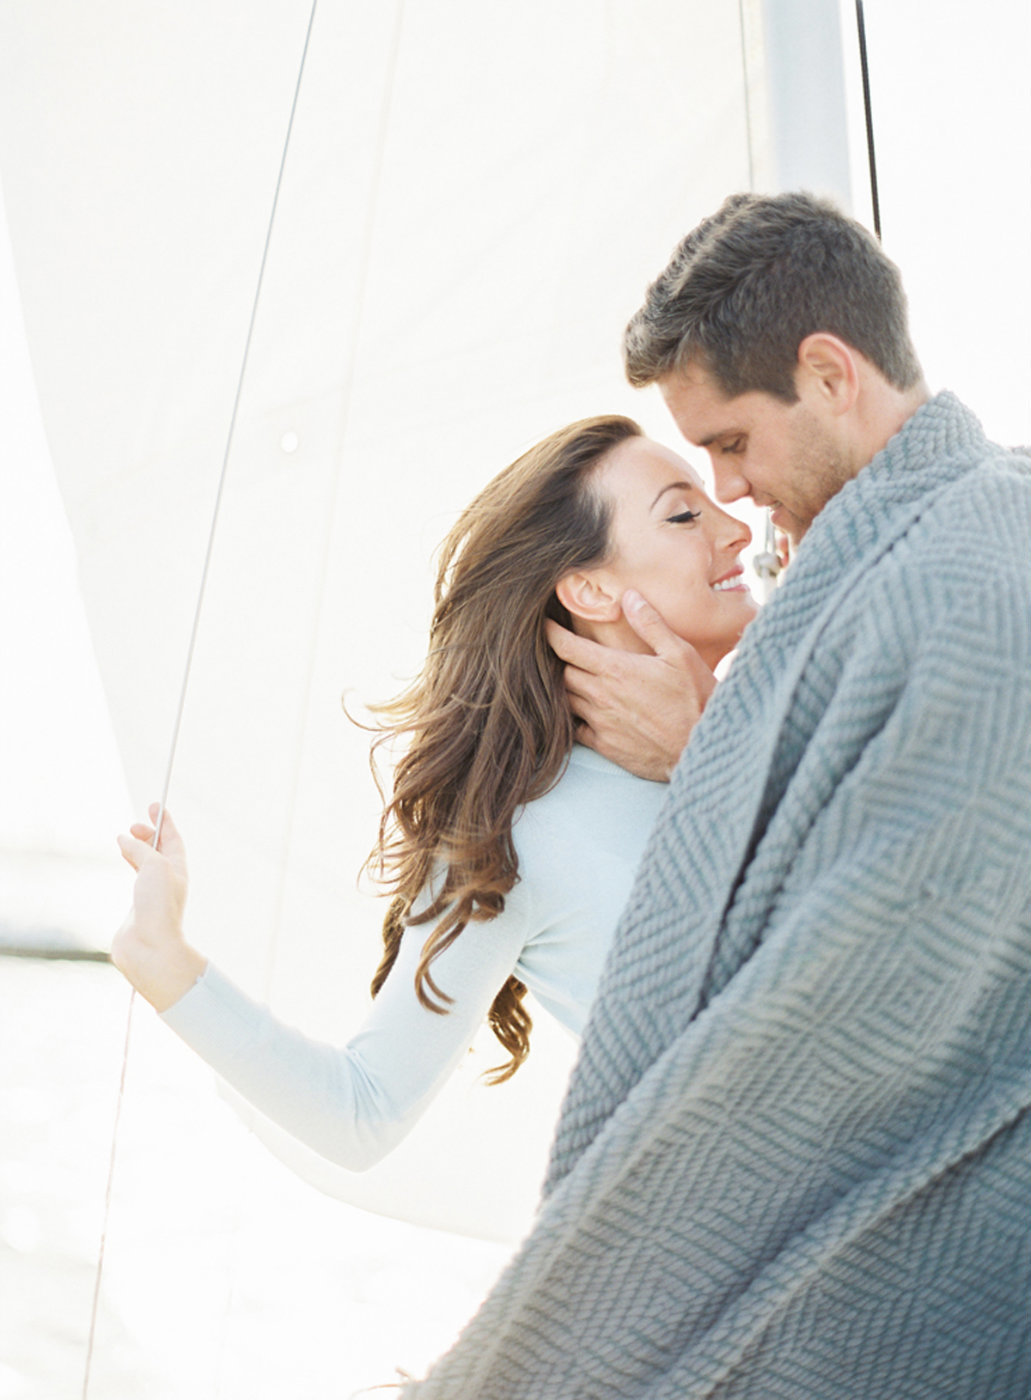 kayla_jon_vizcaya_sailboat_engagement_melanie_gabrielle_photography_42